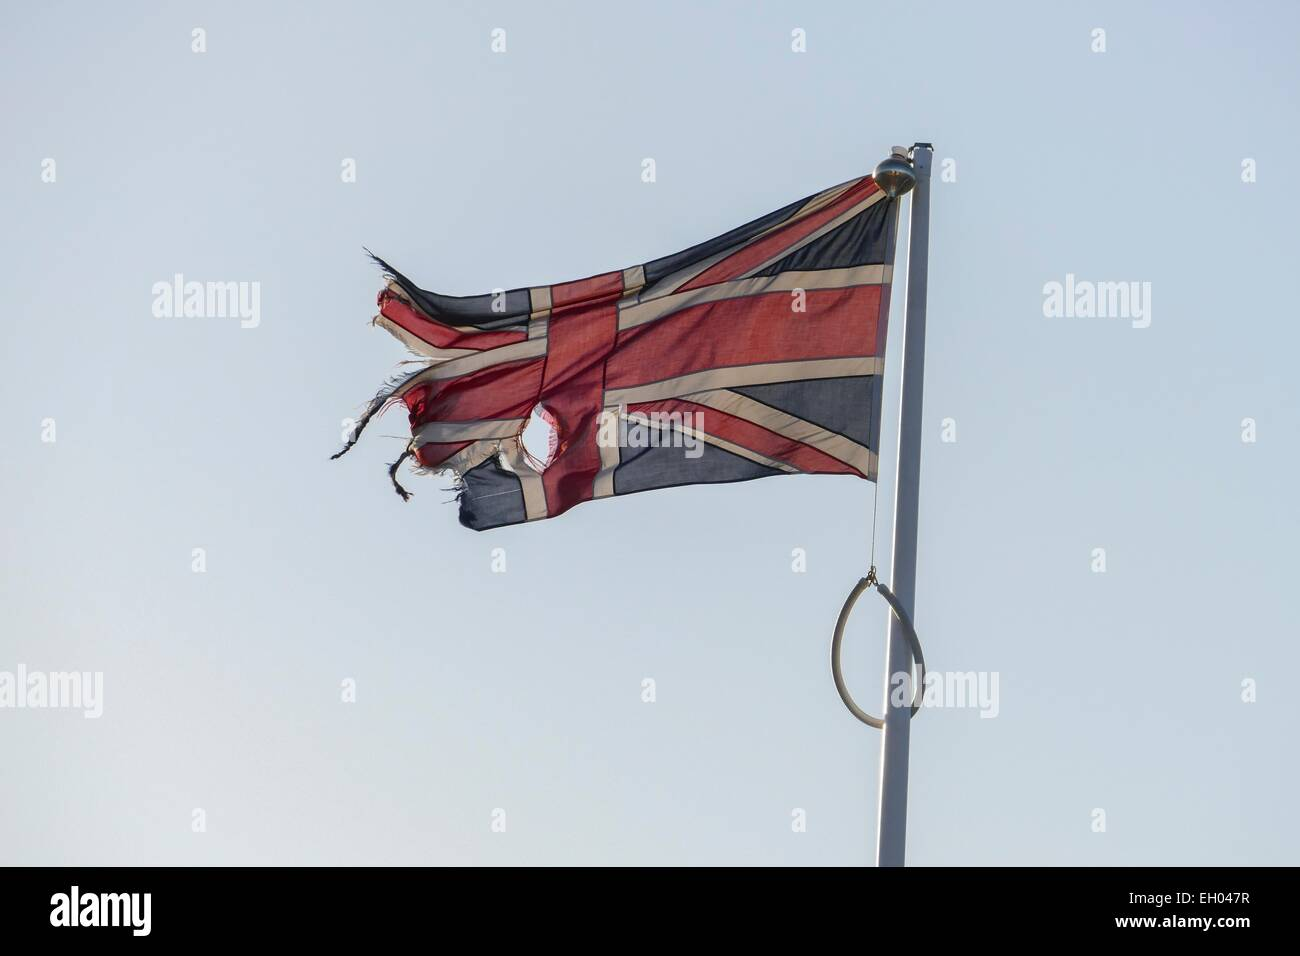 A ripped Union Jack flying from a flagpole - Stock Image